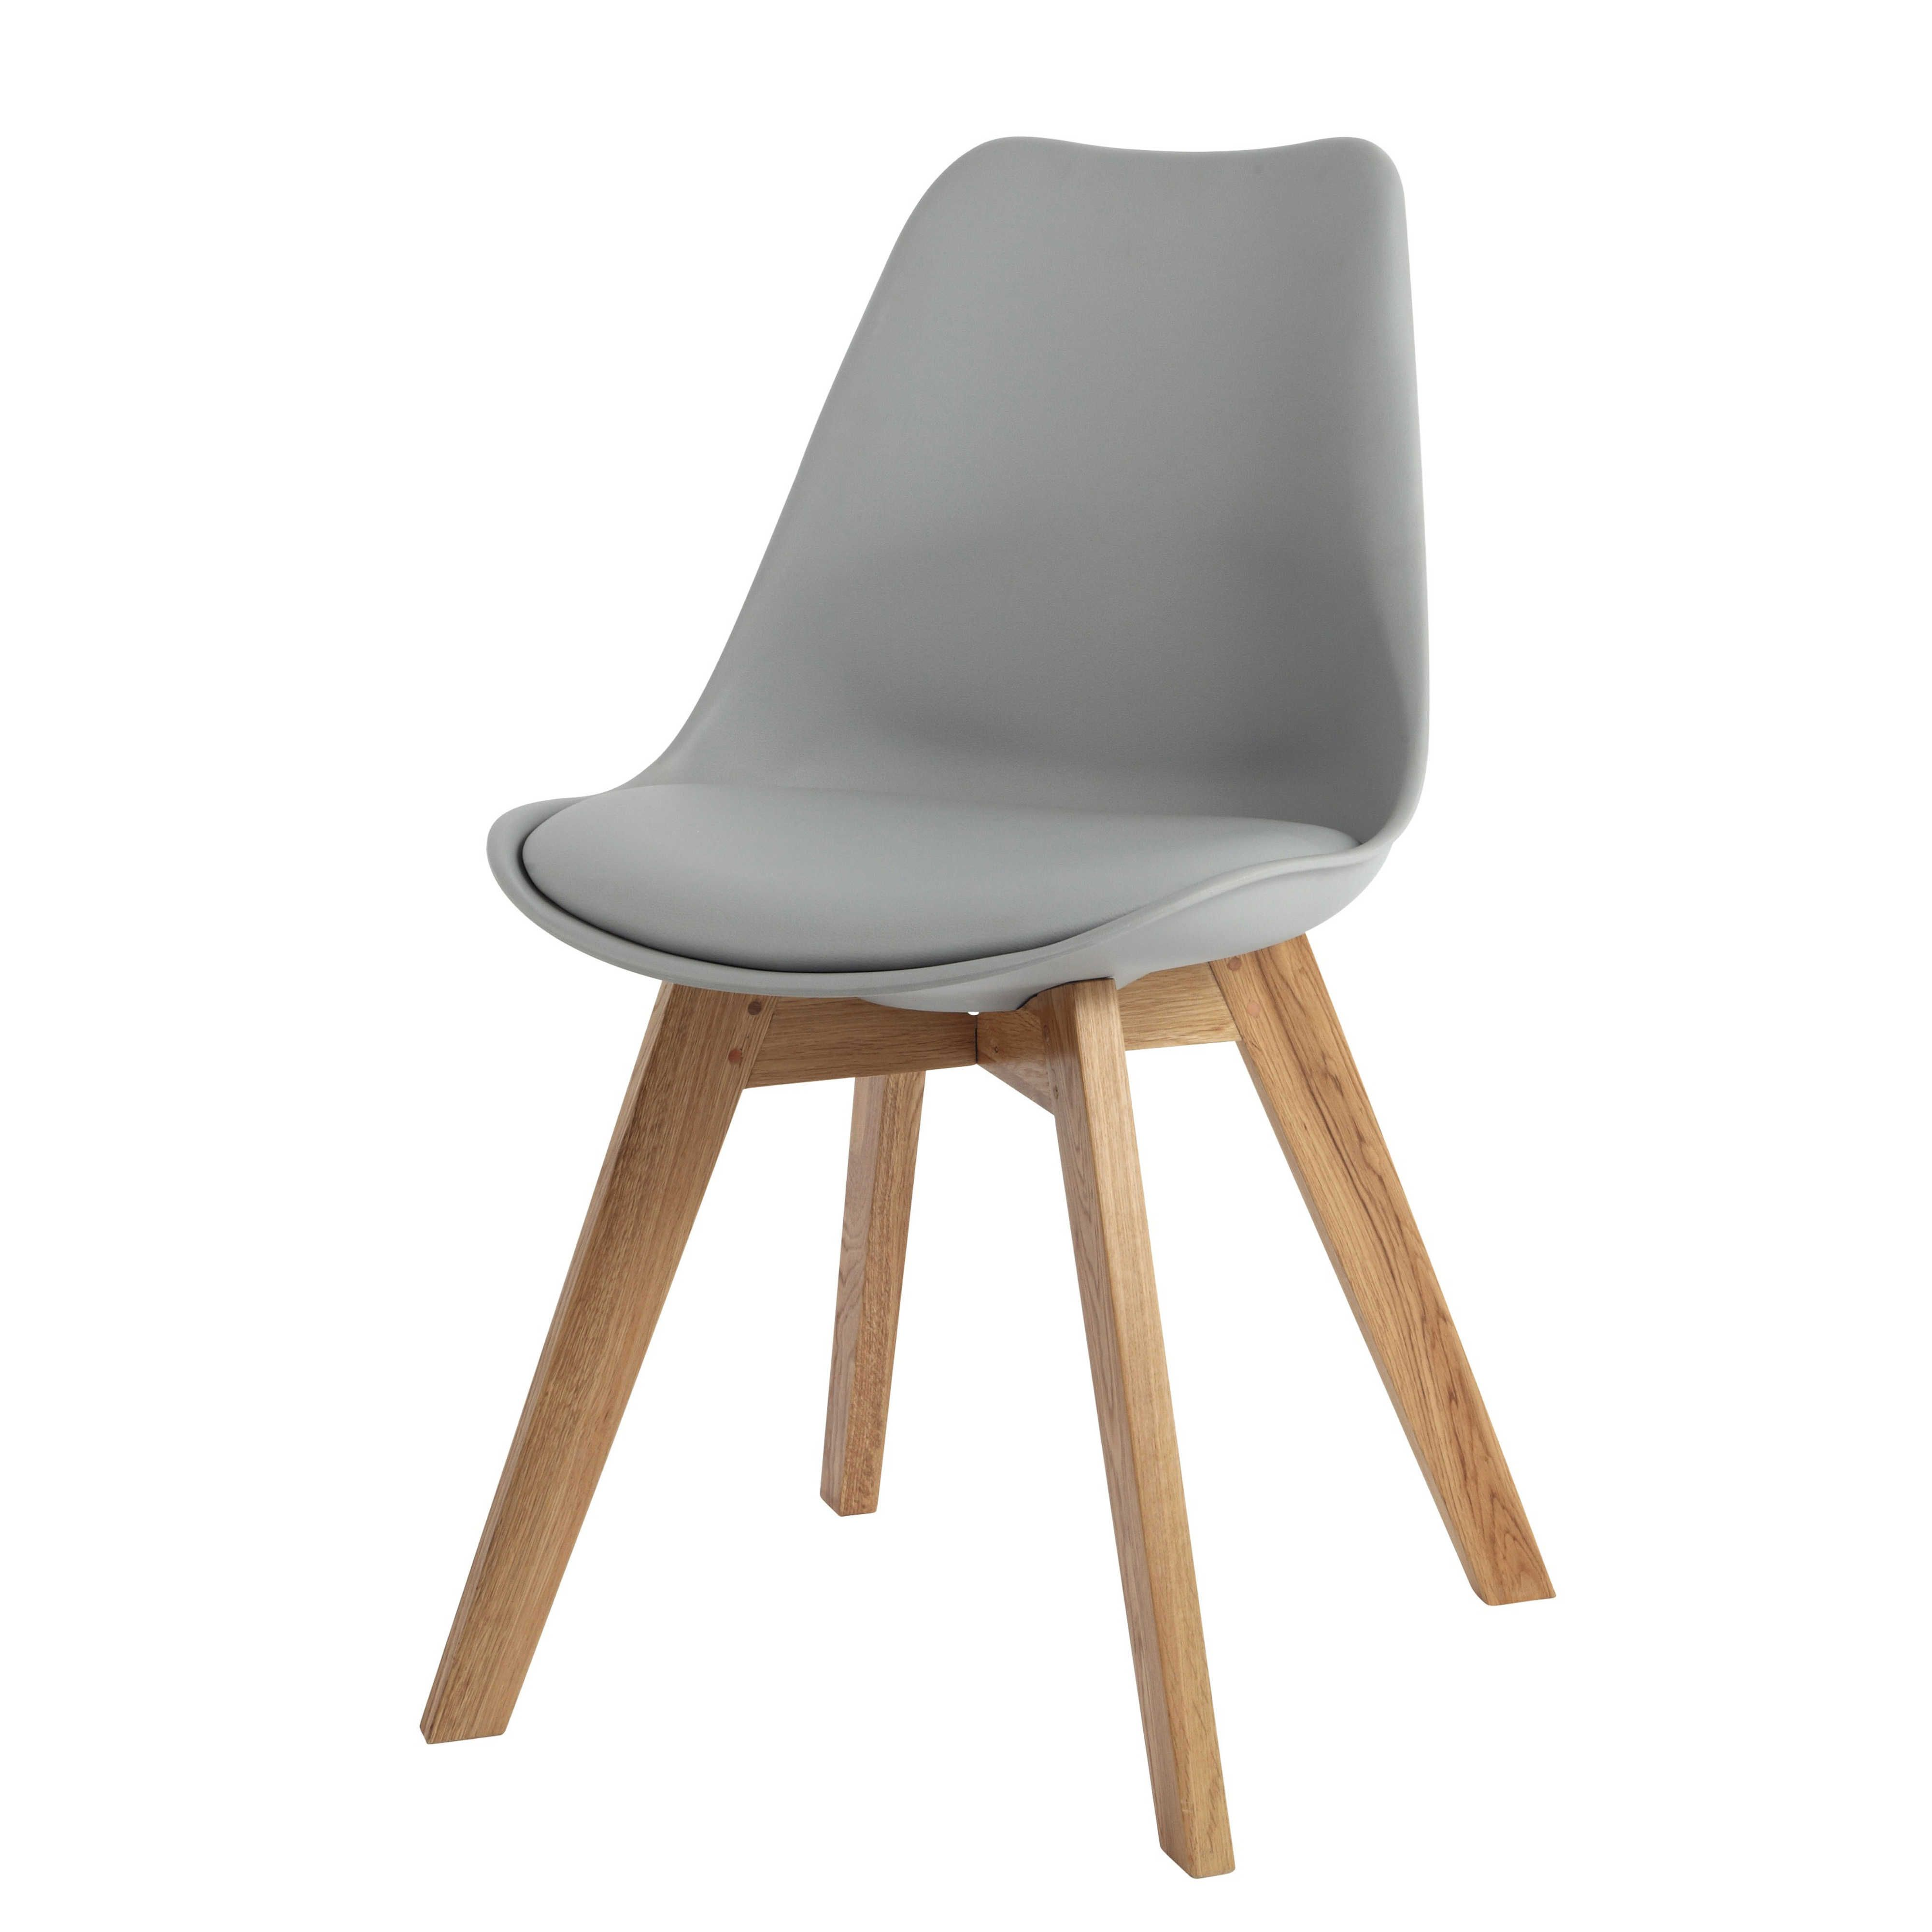 Clean Lines And Scandinavian Style Must Have Grey Fabric Comibined In Jonstrup Dining Chair Gray Dining Chairs Scandinavian Interior Style Dining Chairs